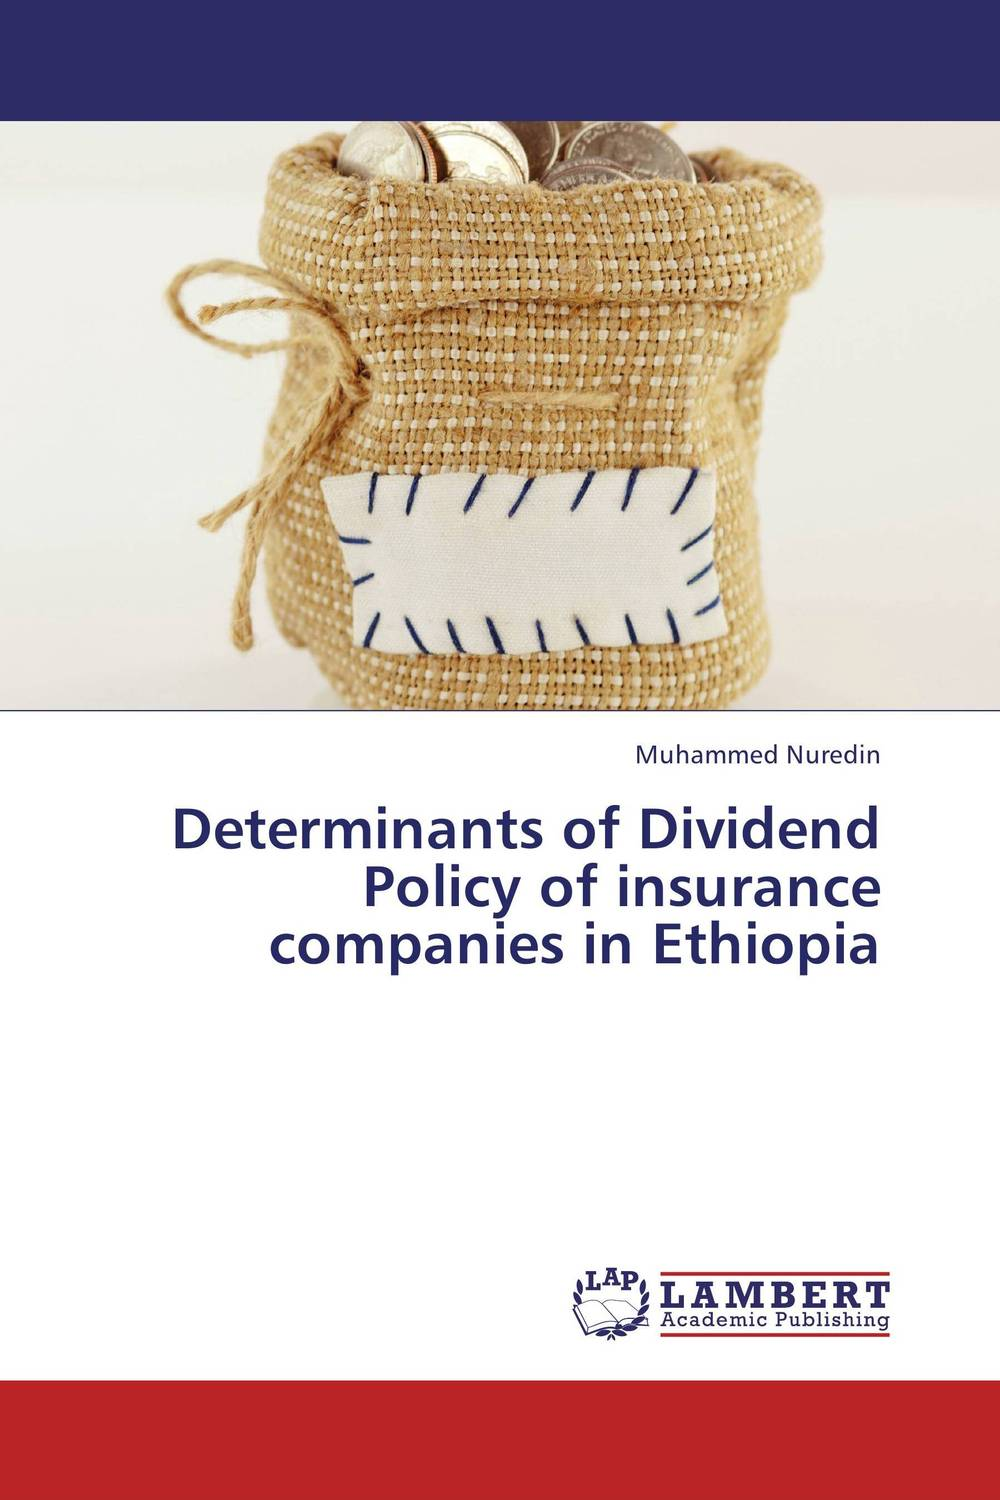 Determinants of Dividend Policy of insurance companies in Ethiopia sujata kapoor dividend policy and its impact on shareholders wealth